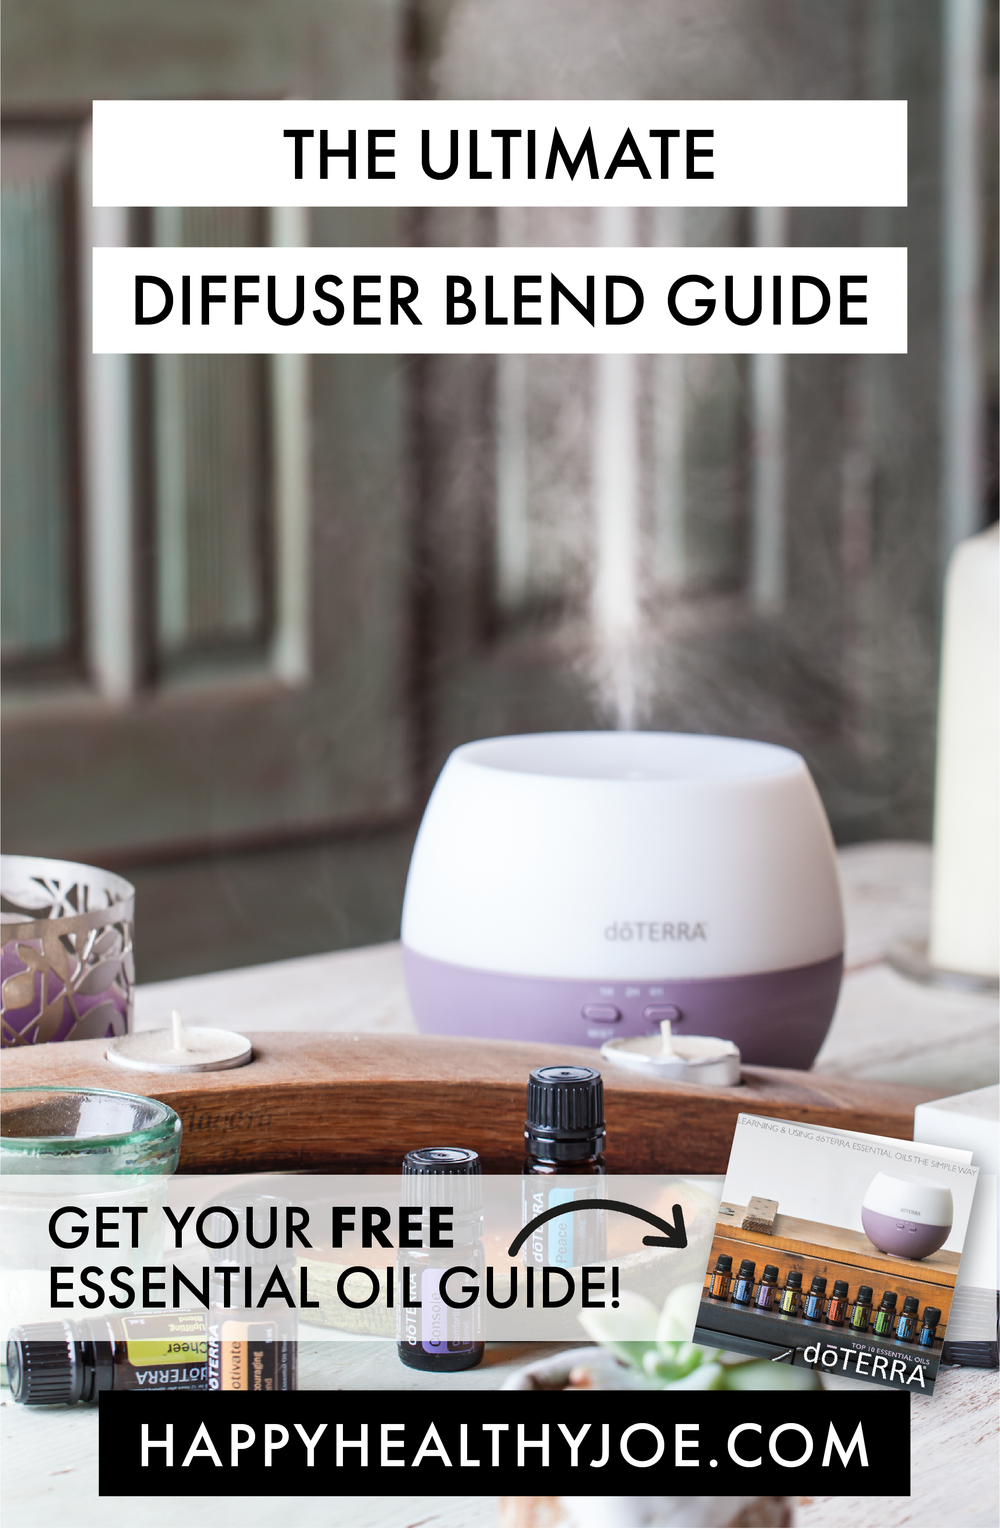 ULTIMATE DIFFUSER BLEND GUIDE WITH DOTERRA ESSENTIAL OILS